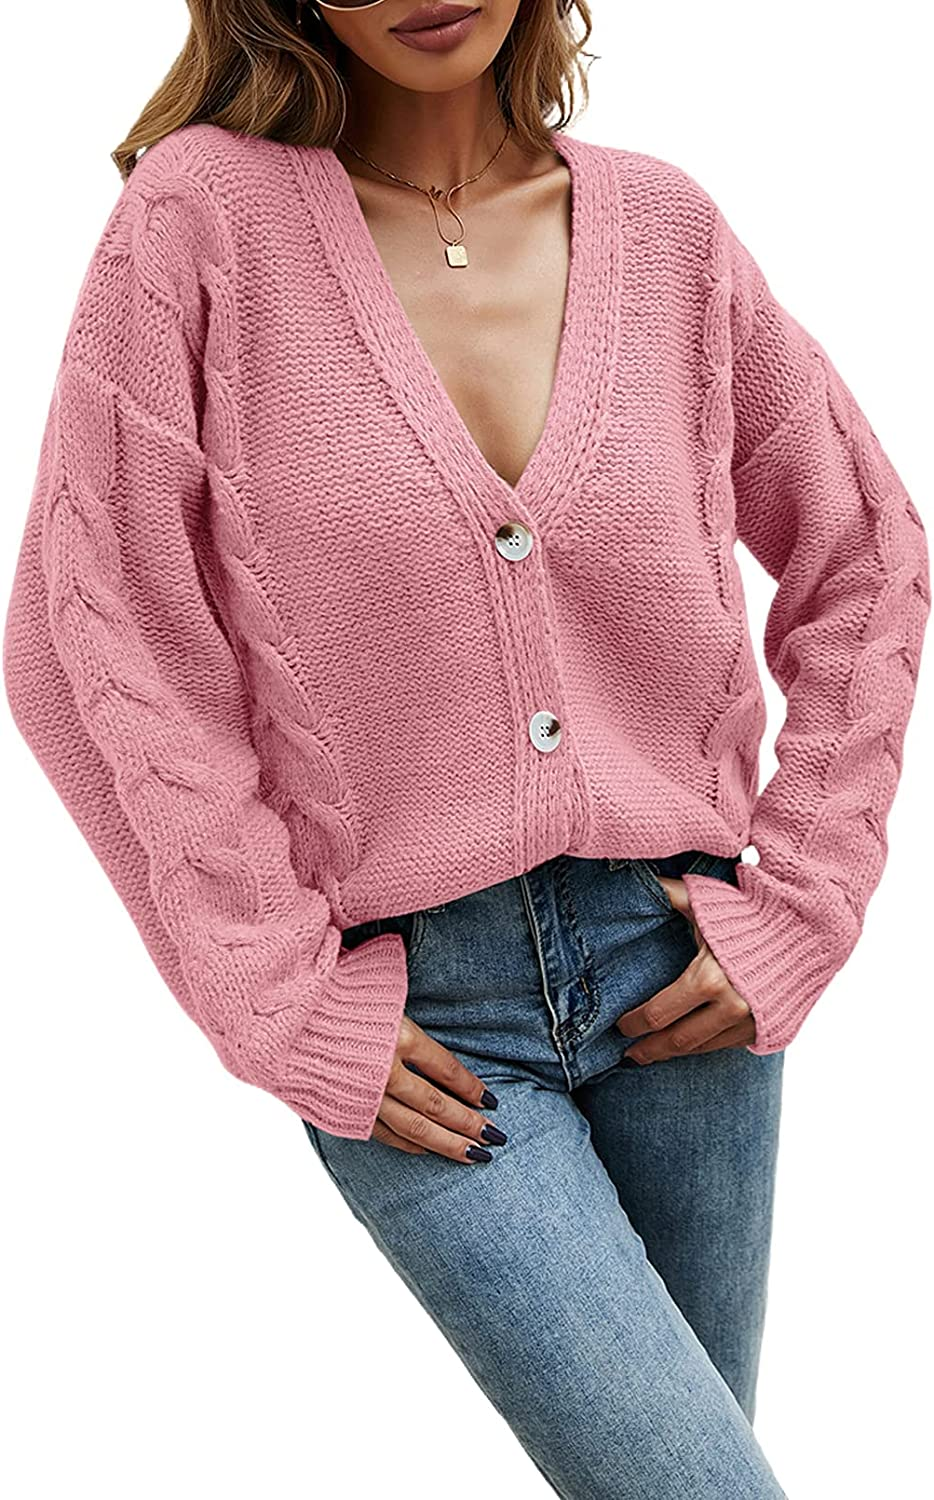 Women's Button V Neck Open Front Cardigan Sweater Chunky Cable Knit Long Sleeve Kimono Cardigan Outerwear Coat